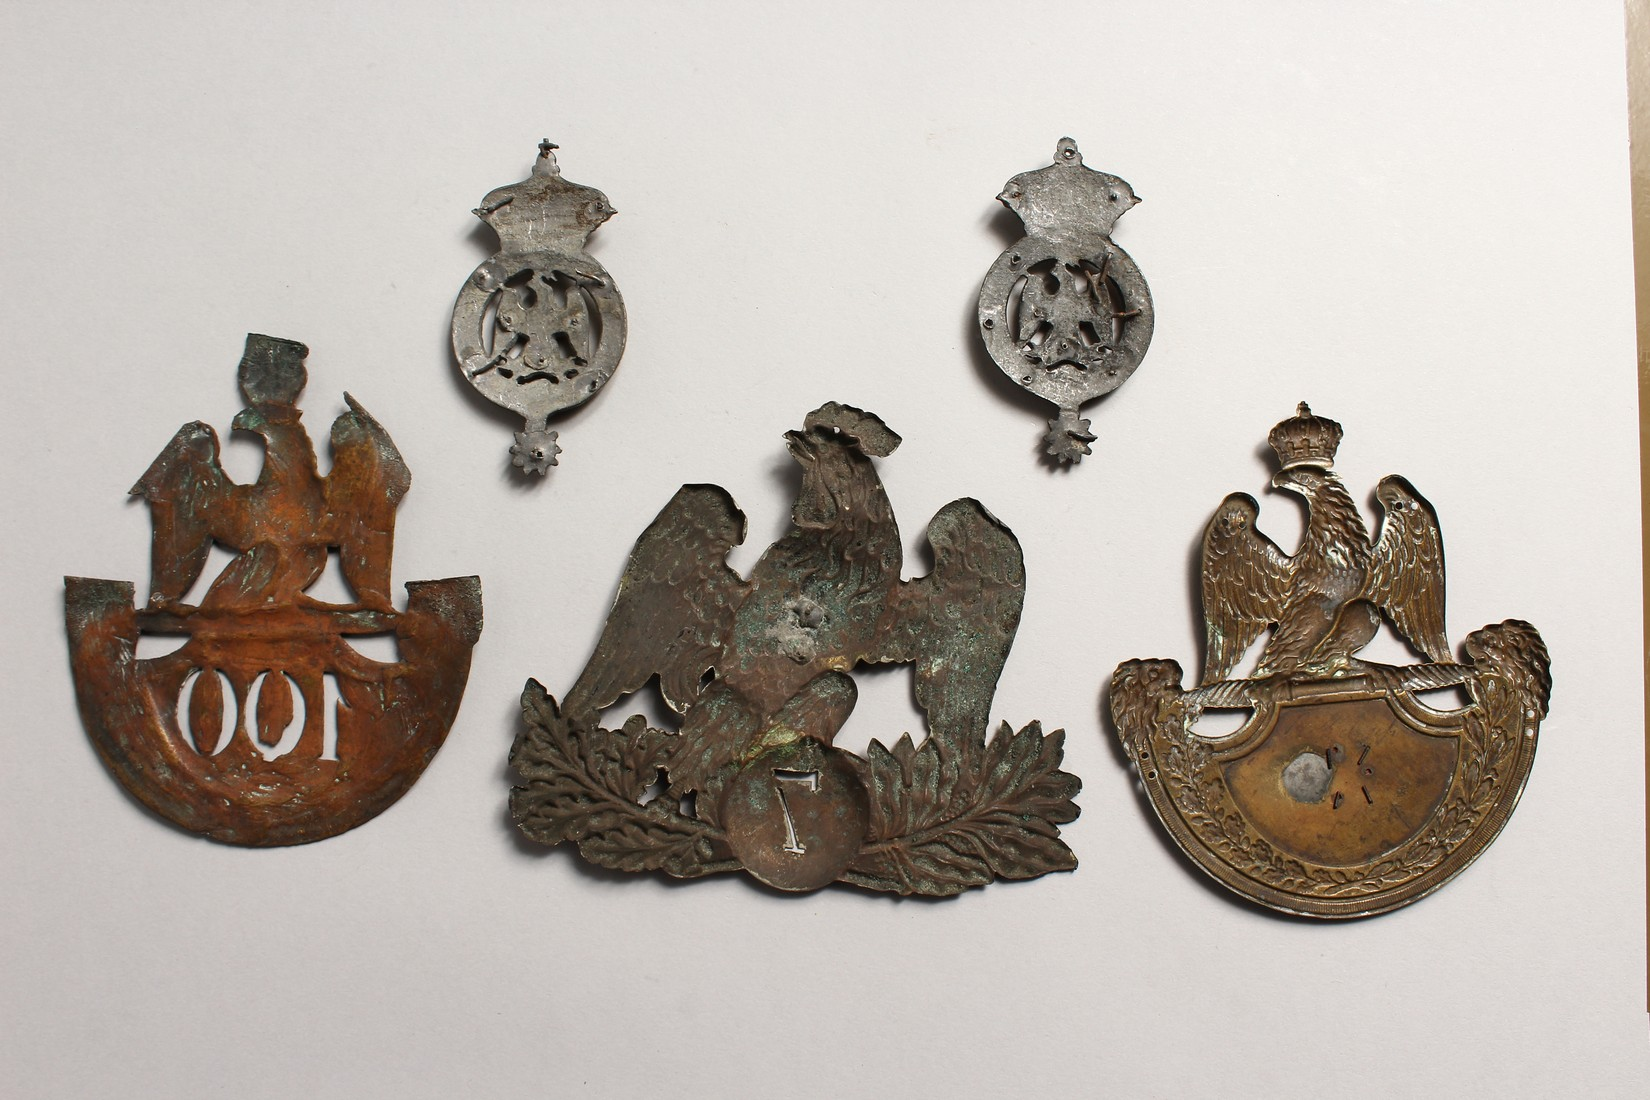 THREE LARGE NAPOLEONIC BRASS BADGES and two small badges. (5) - Image 2 of 2